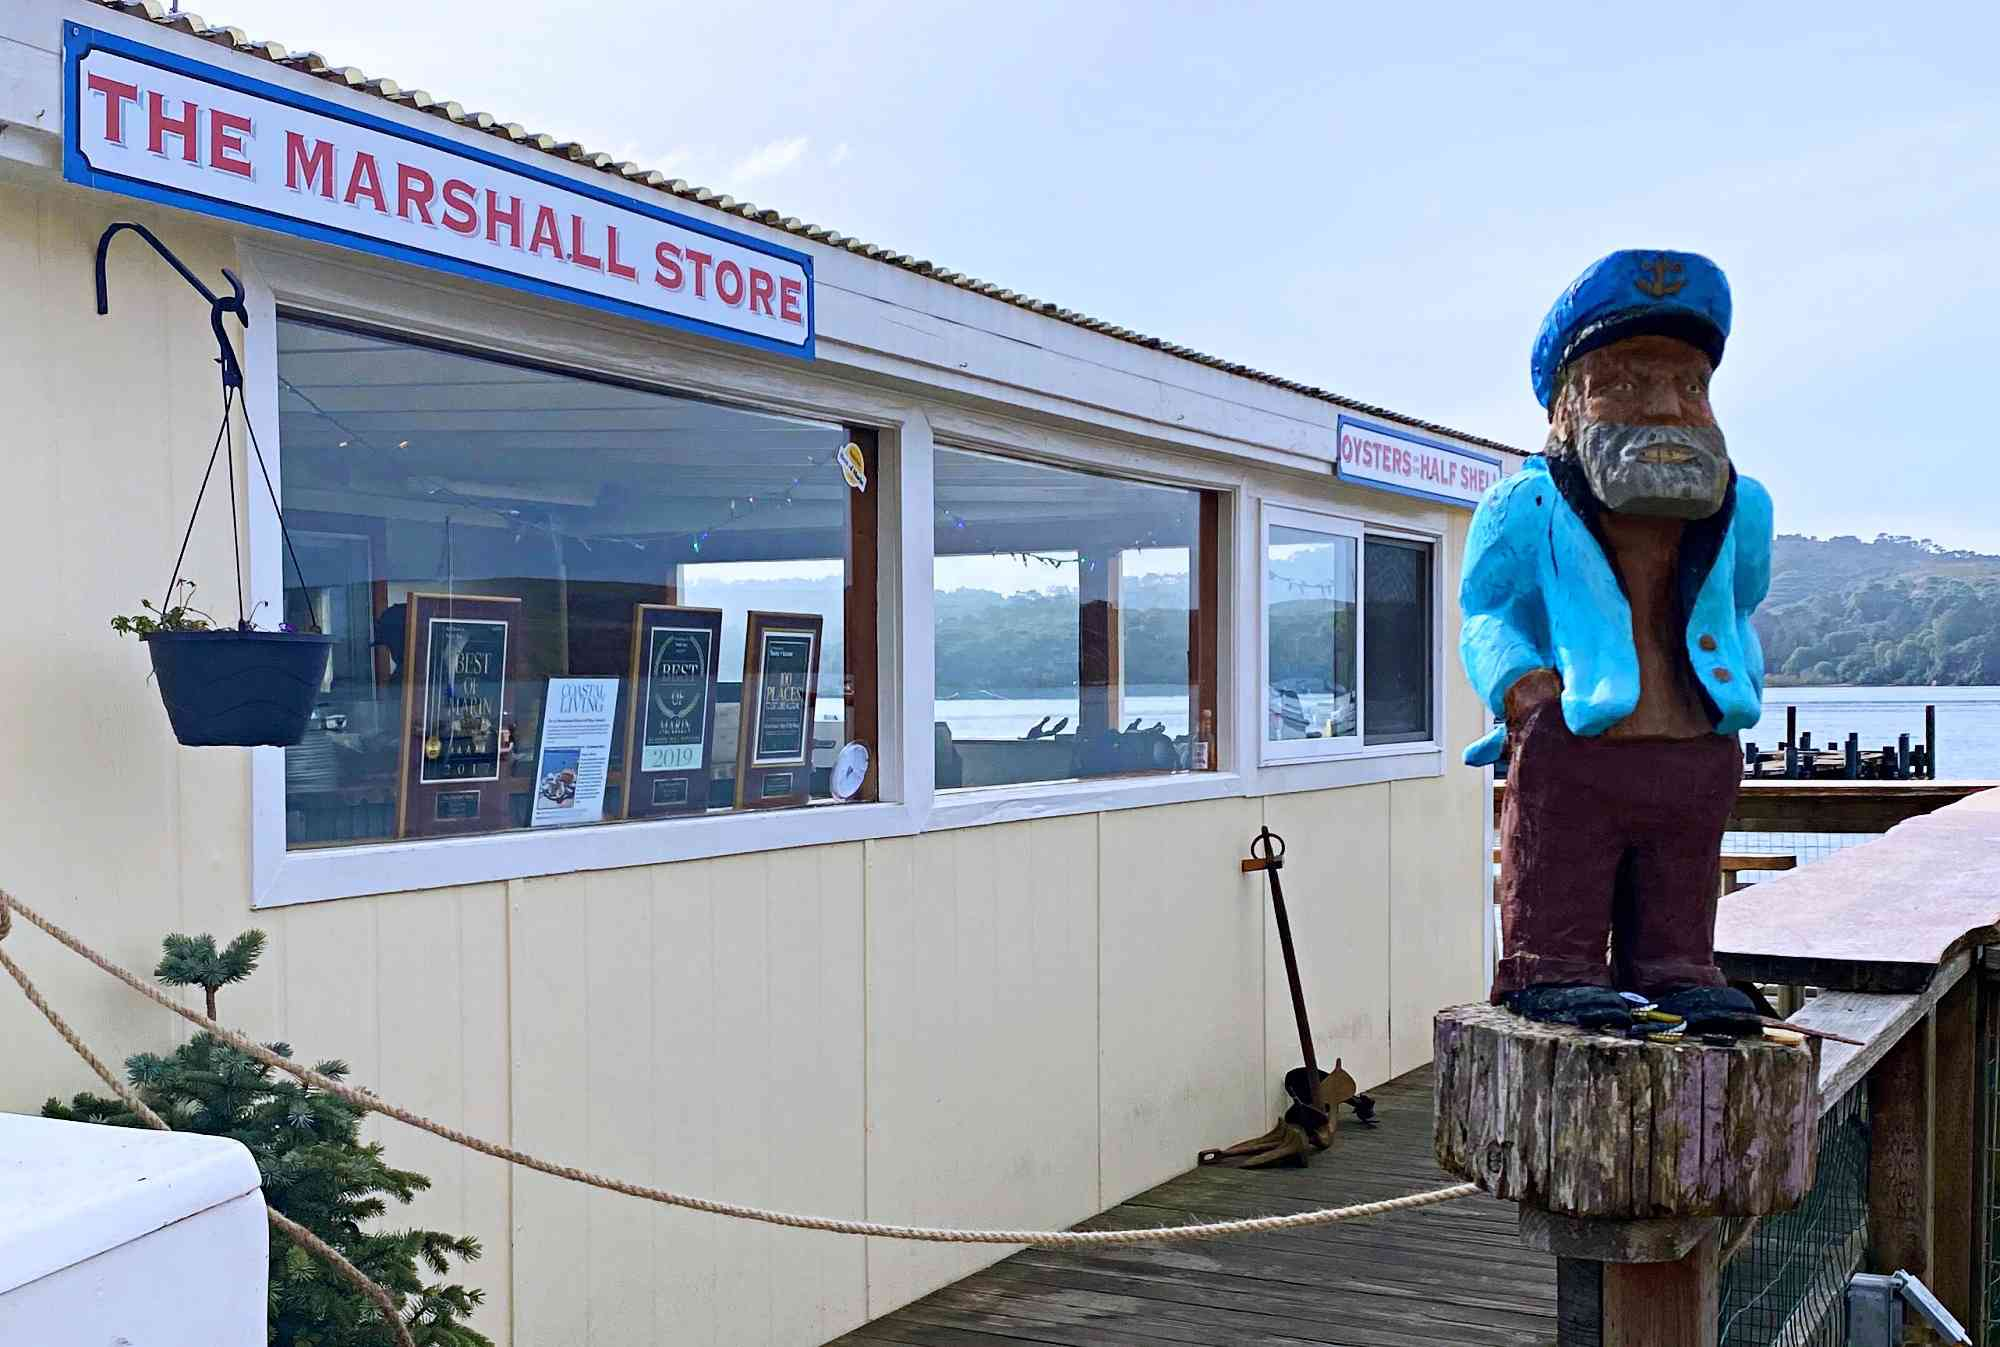 The Marshall Store off Tomales Bay in California